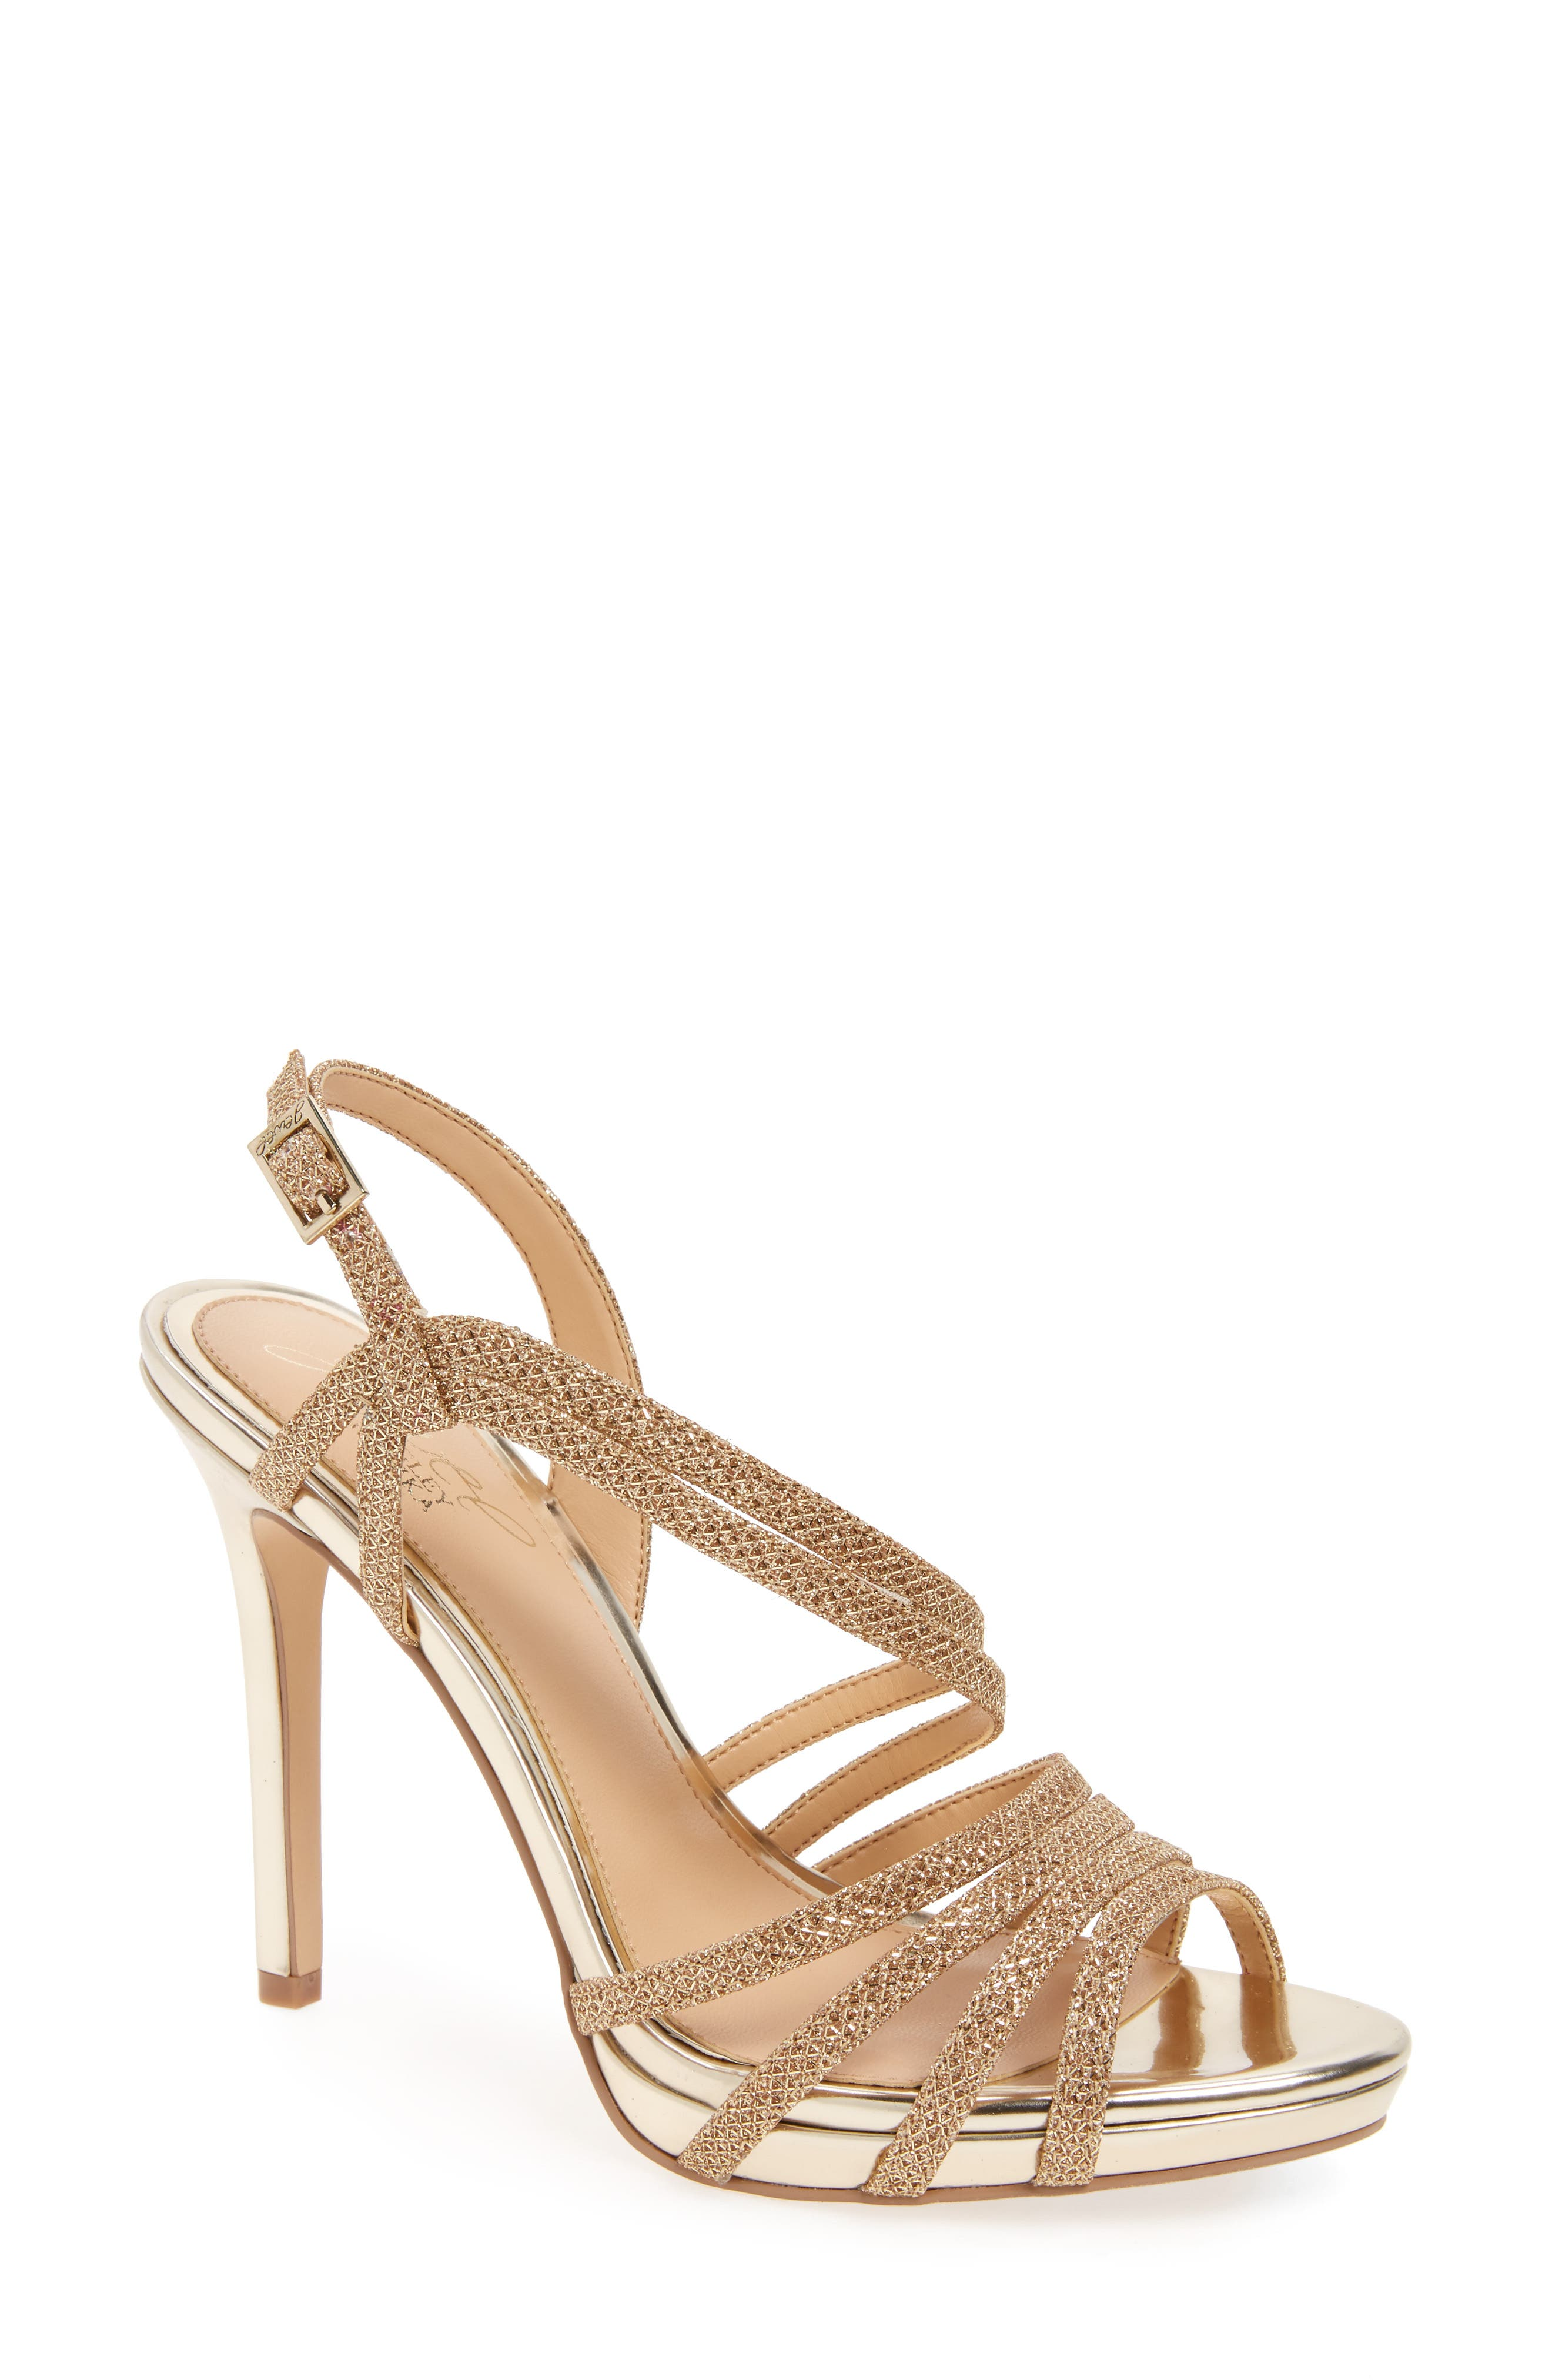 Jewel Badgley Mischka Humble Strappy Sandal (Women)